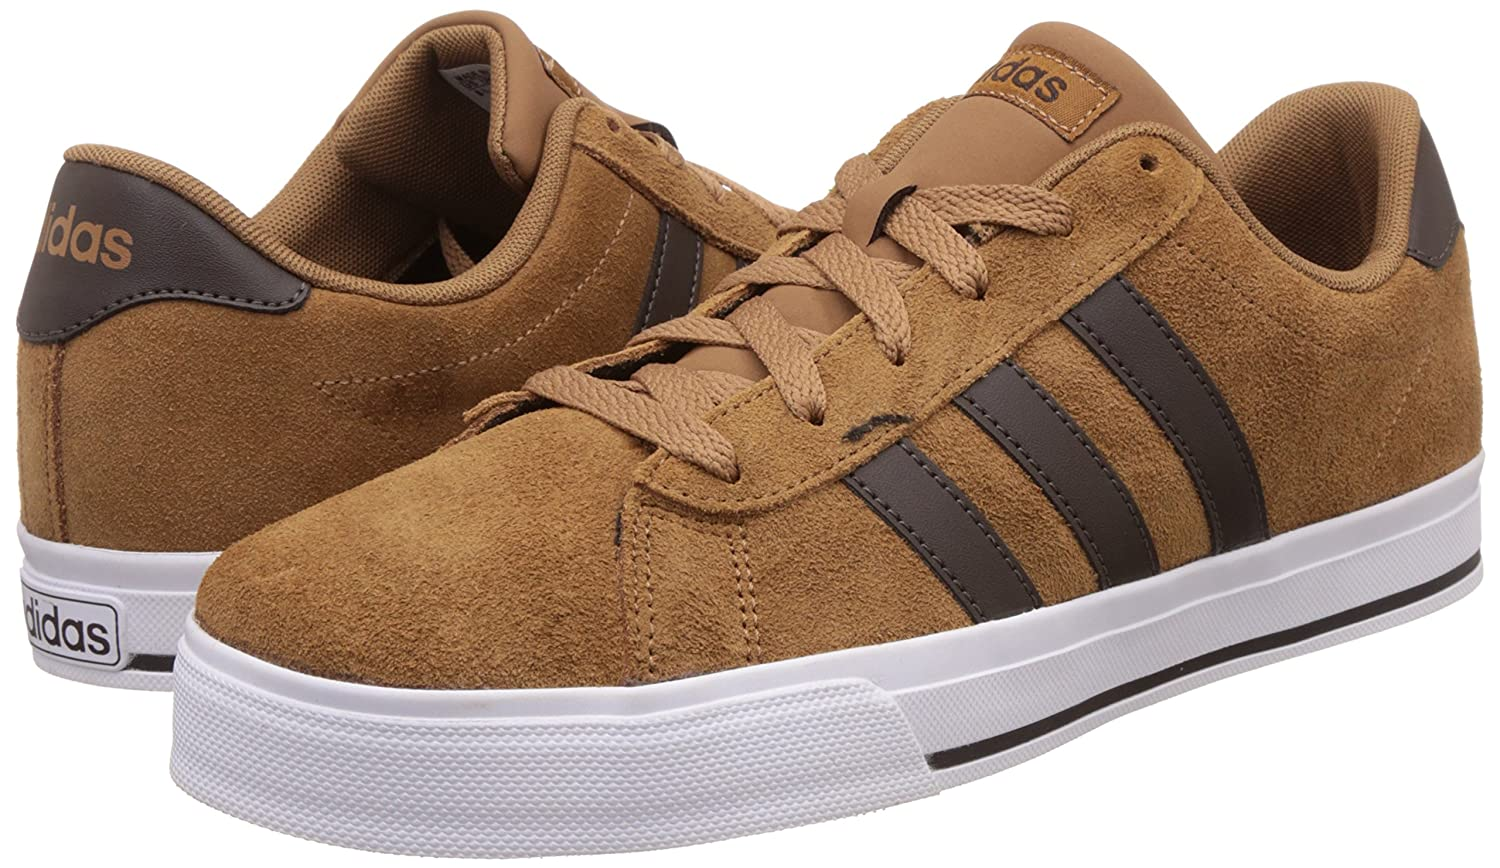 buy popular 55fd2 e1c61 adidas neo Mens Daily Timber, Dbrown and Ftwwht Leather Sneakers - 12  UKIndia (47.3 EU) Buy Online at Low Prices in India - Amazon.in